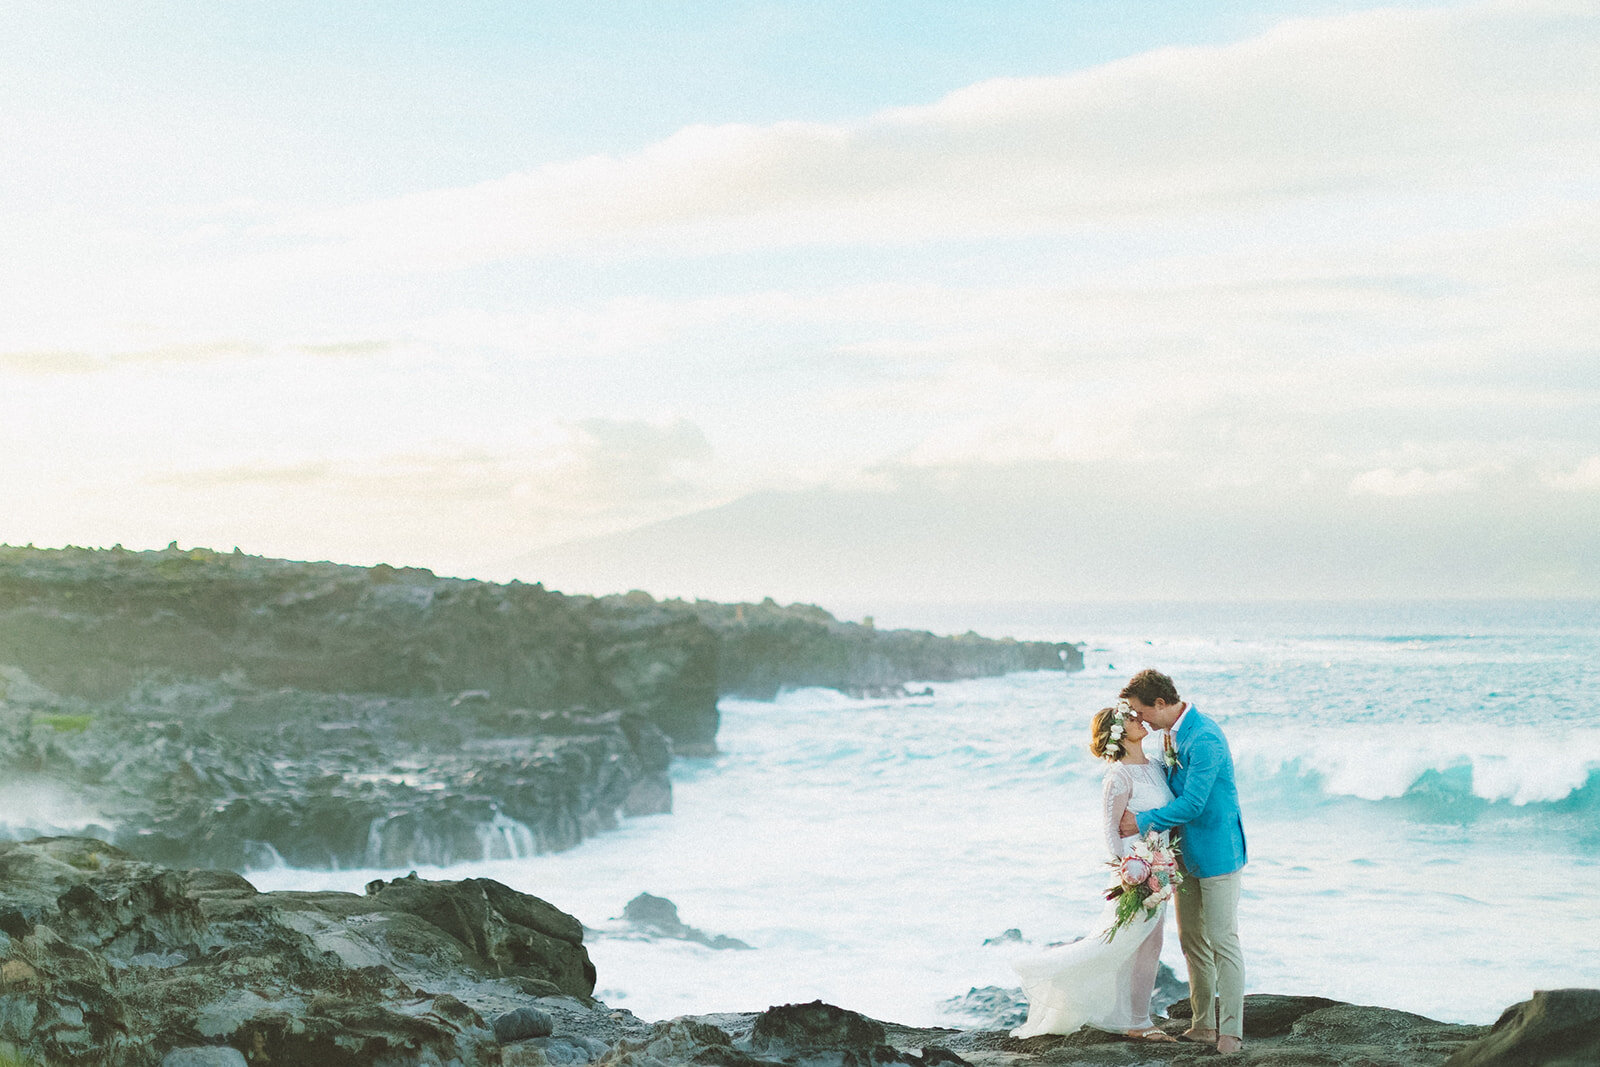 Maui wedding photographer20181126_0046.jpg